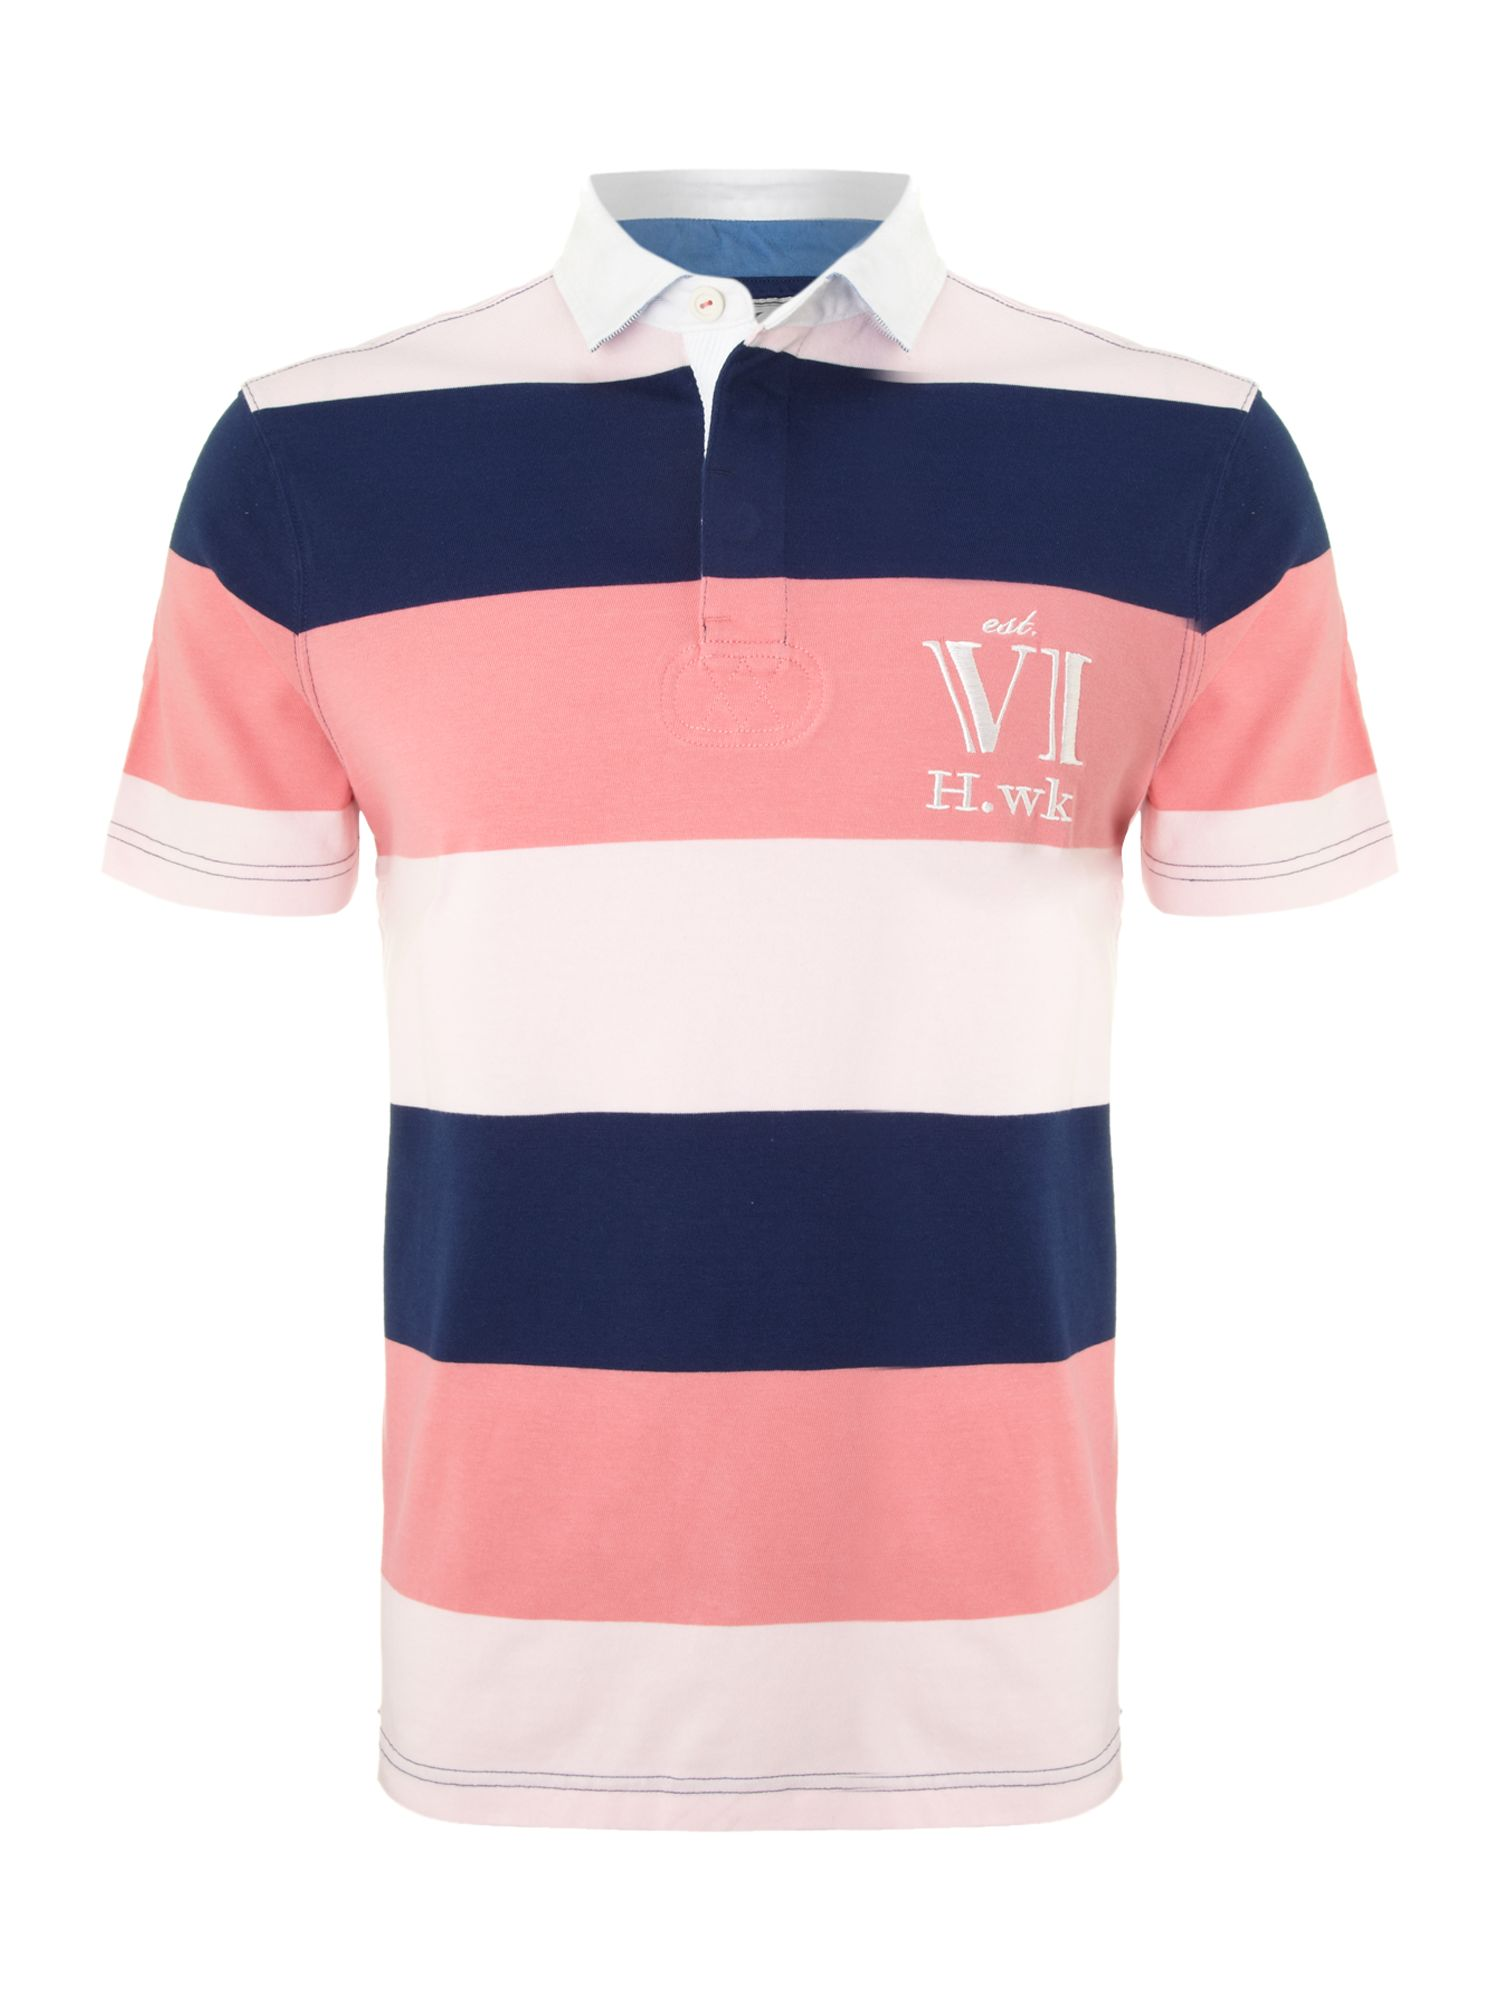 Miami striped rugby